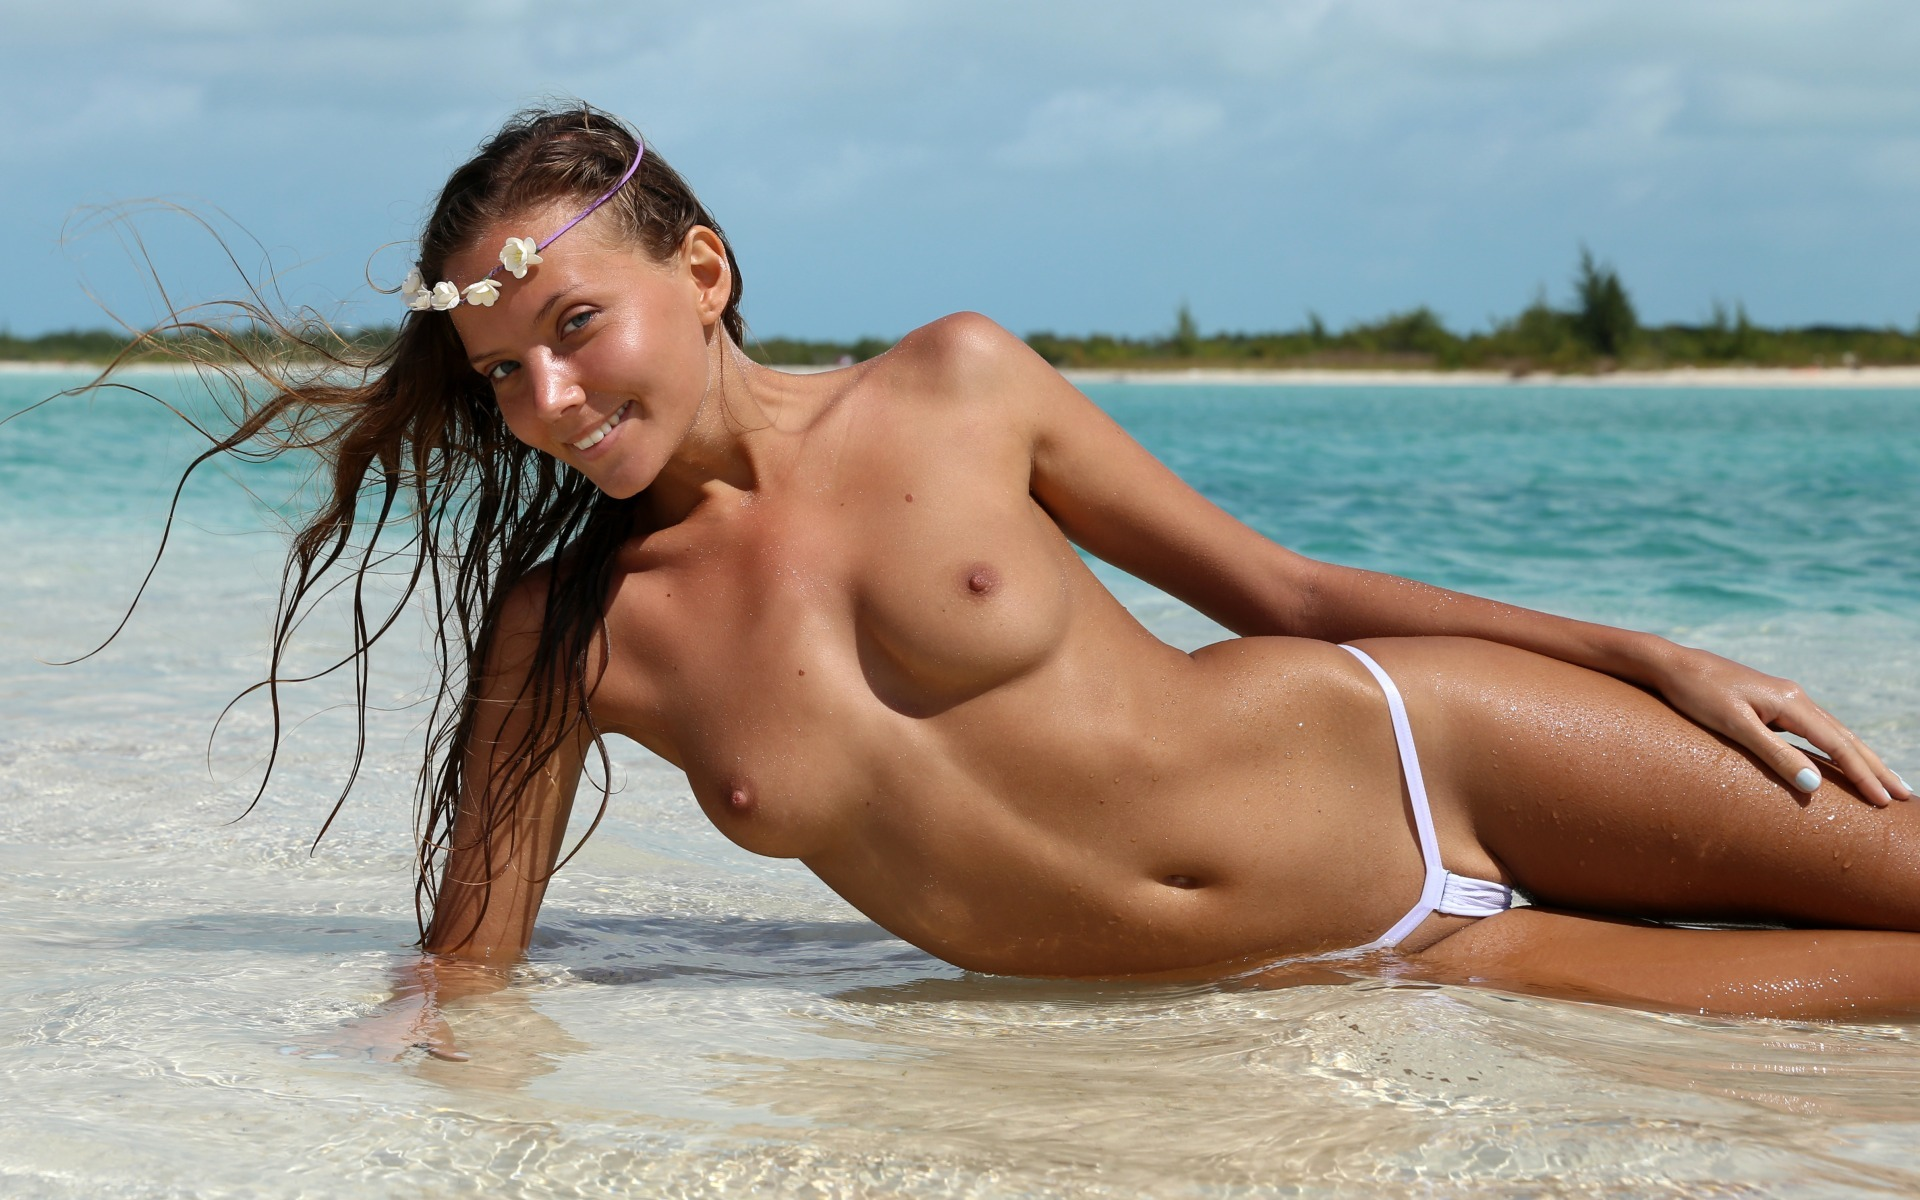 Erotic girls at the beach, girl pyssy defloration hq picture